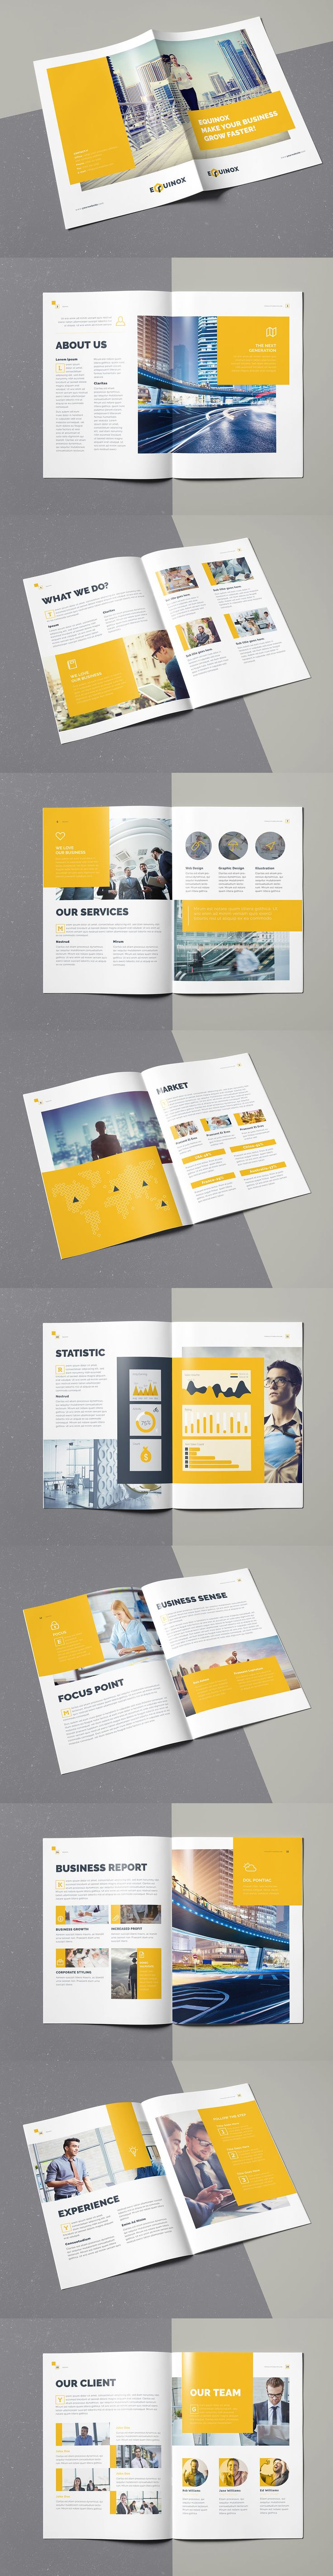 Corporate Brochure Template INDD - Unlimited Downloads